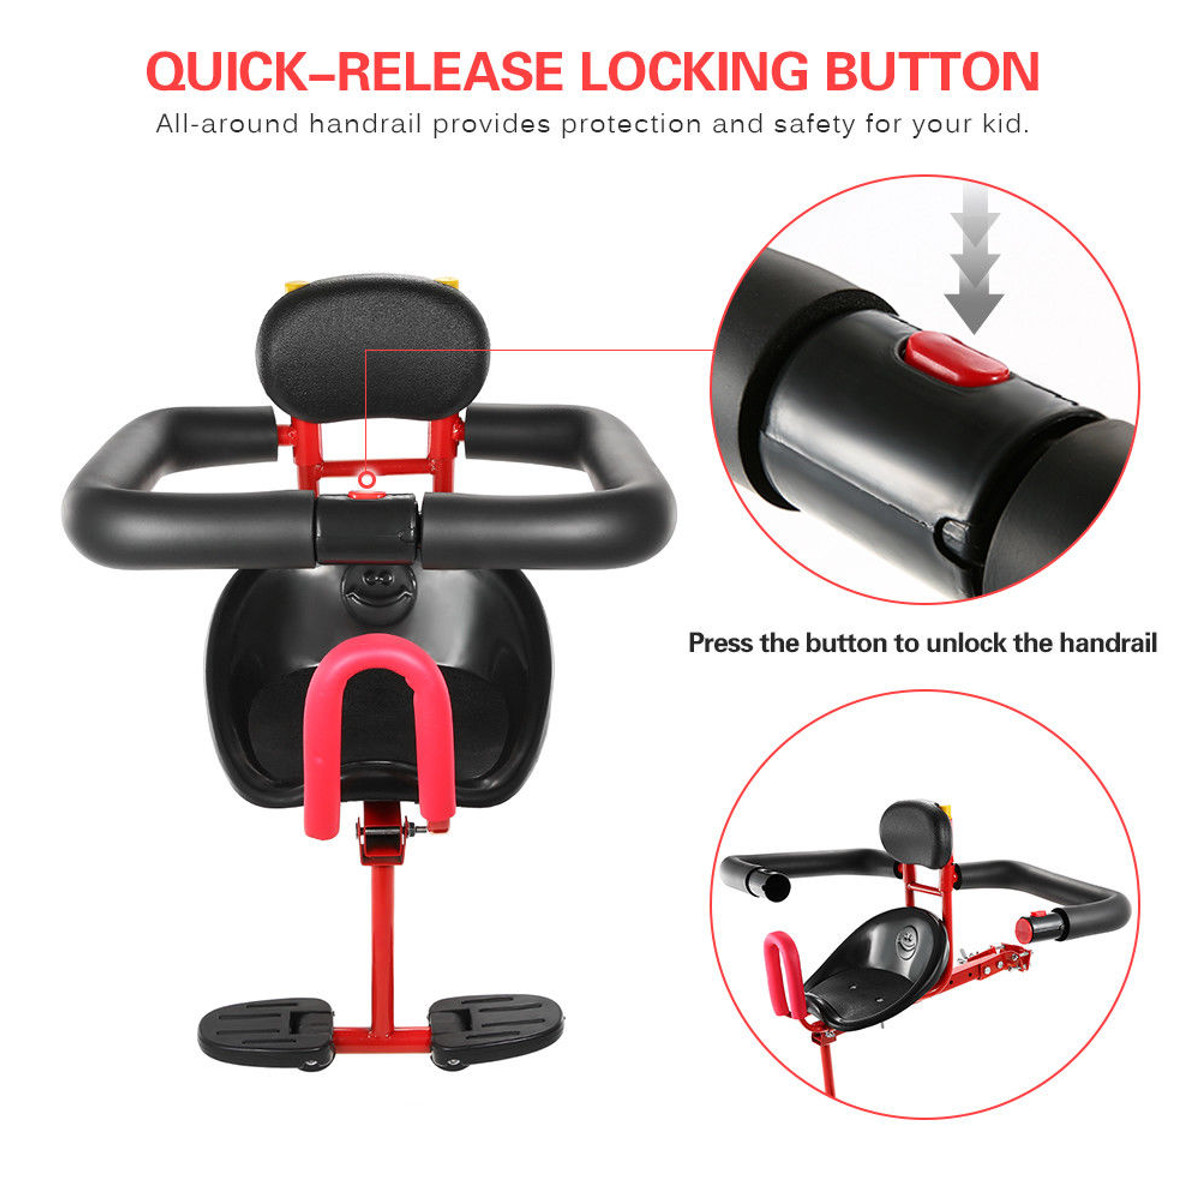 BIKIGHT Bike Kids Rack Mount Seat Protection Safety Quick Release Lock Cycling Children Front Saddle Chair Bike Accessories